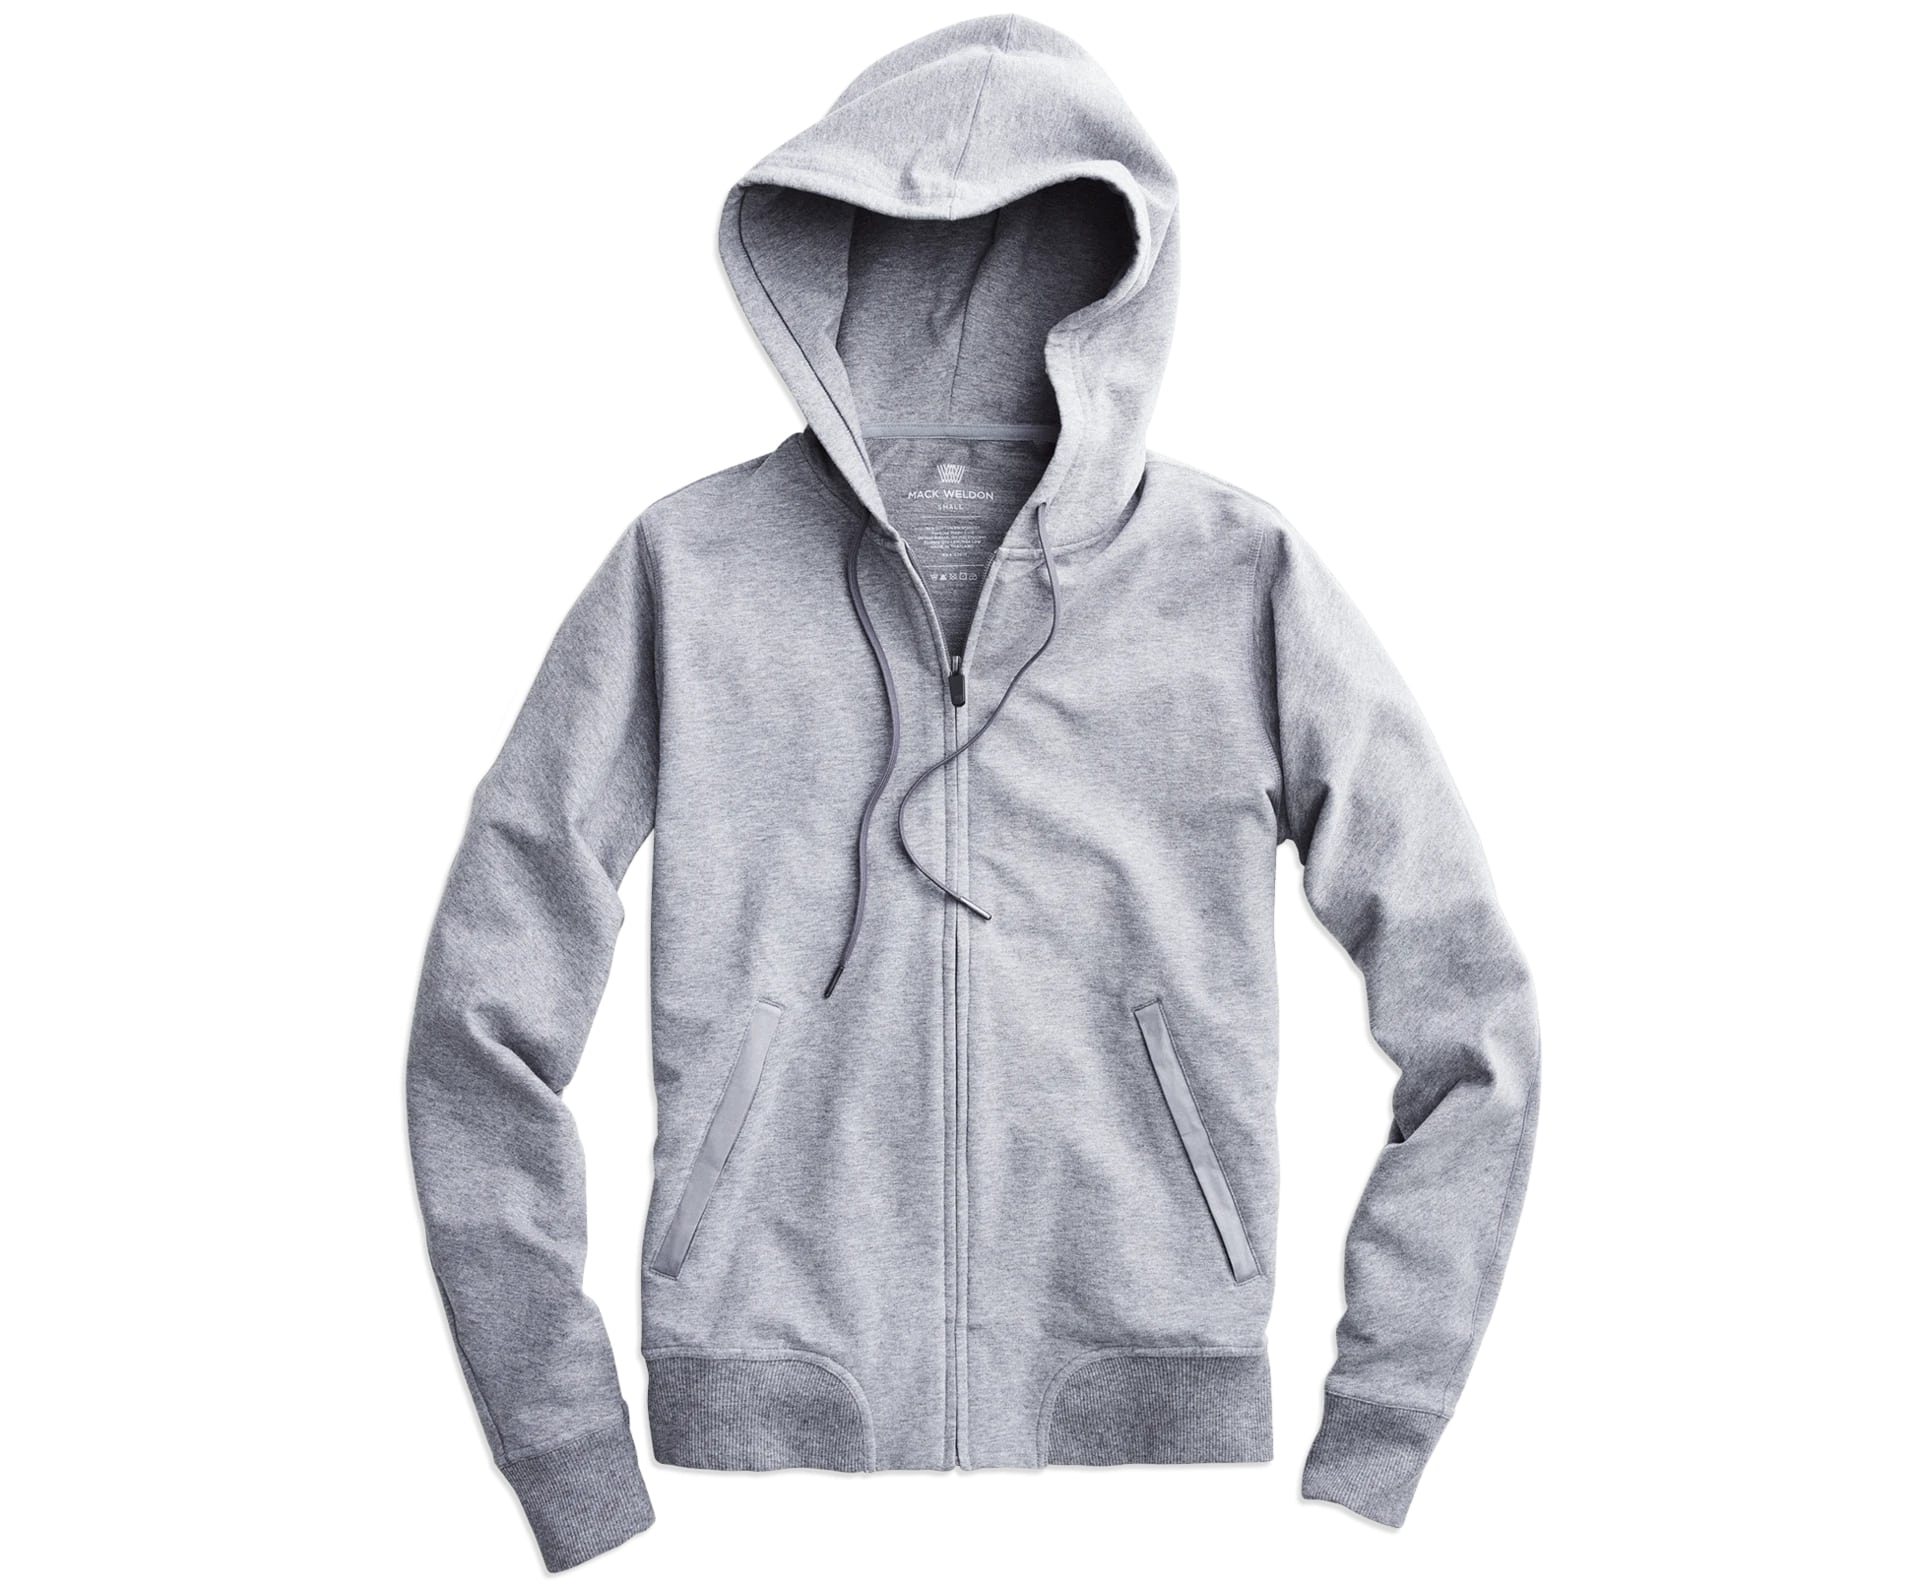 Mack Weldon Ace Hooded Sweatshirt in grey